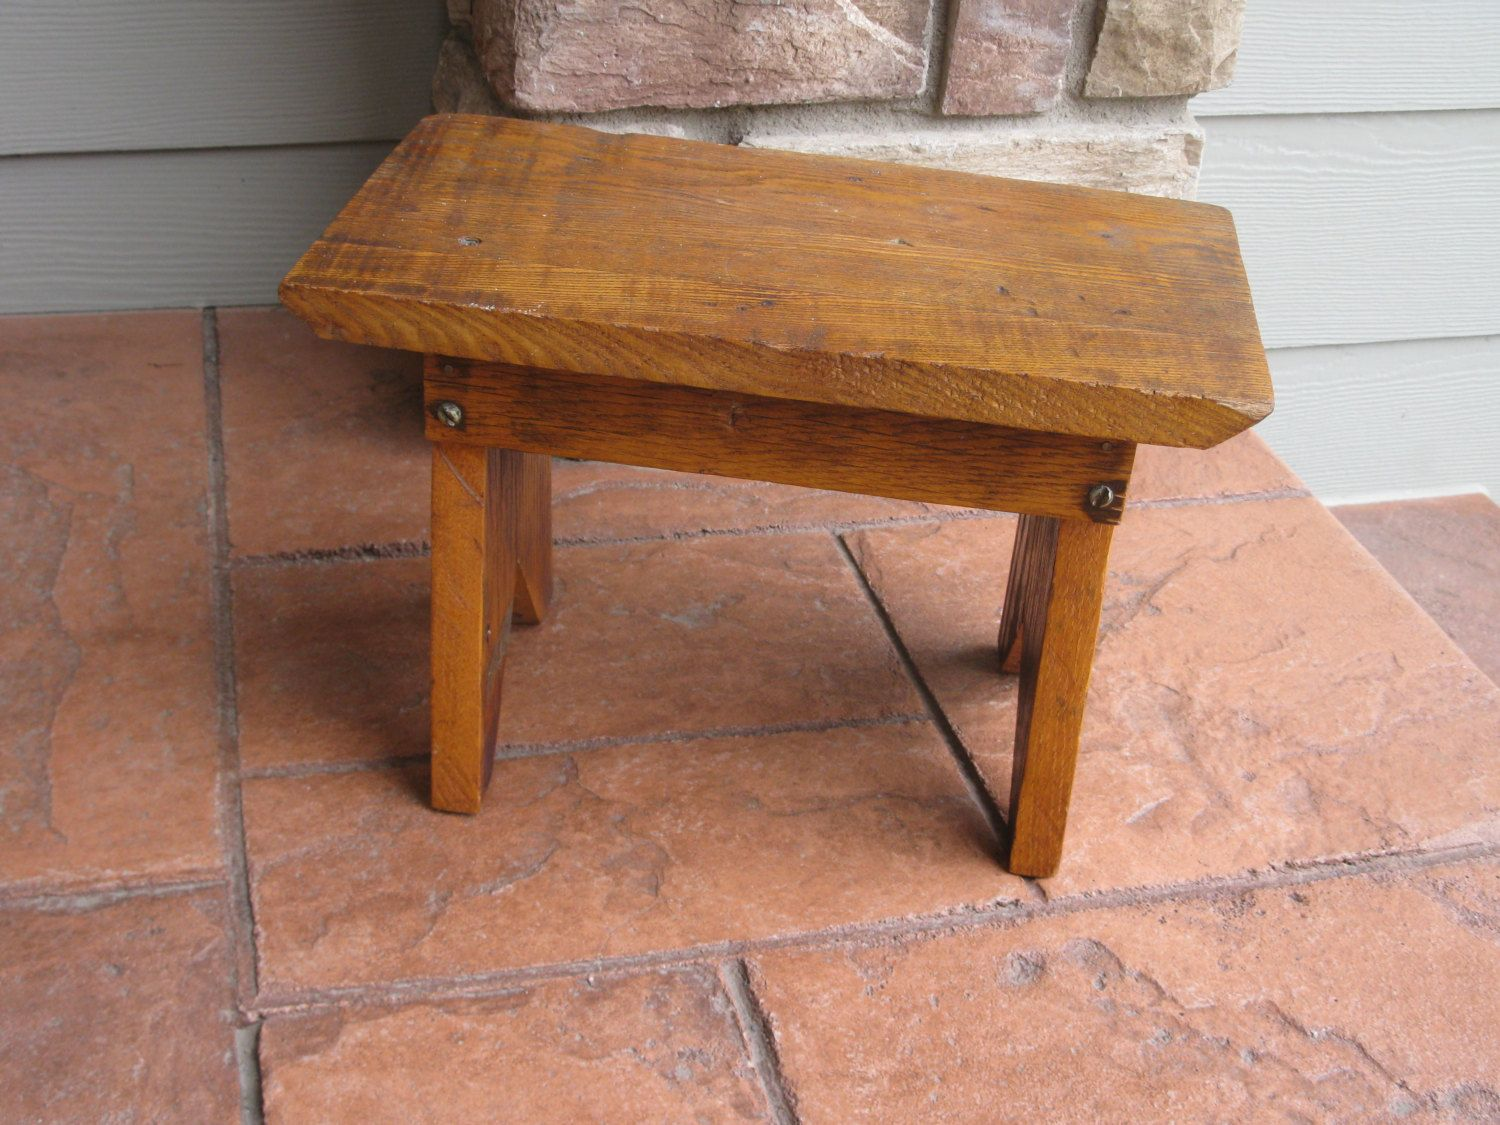 Shabby Wood Bench Step Stool Handcrafted Oak Foot Stool Plant Stand Step Bench Kids Stool Time Out Chair Doll Bench Photo Prop By Time Out Chair Kids Stool Wood